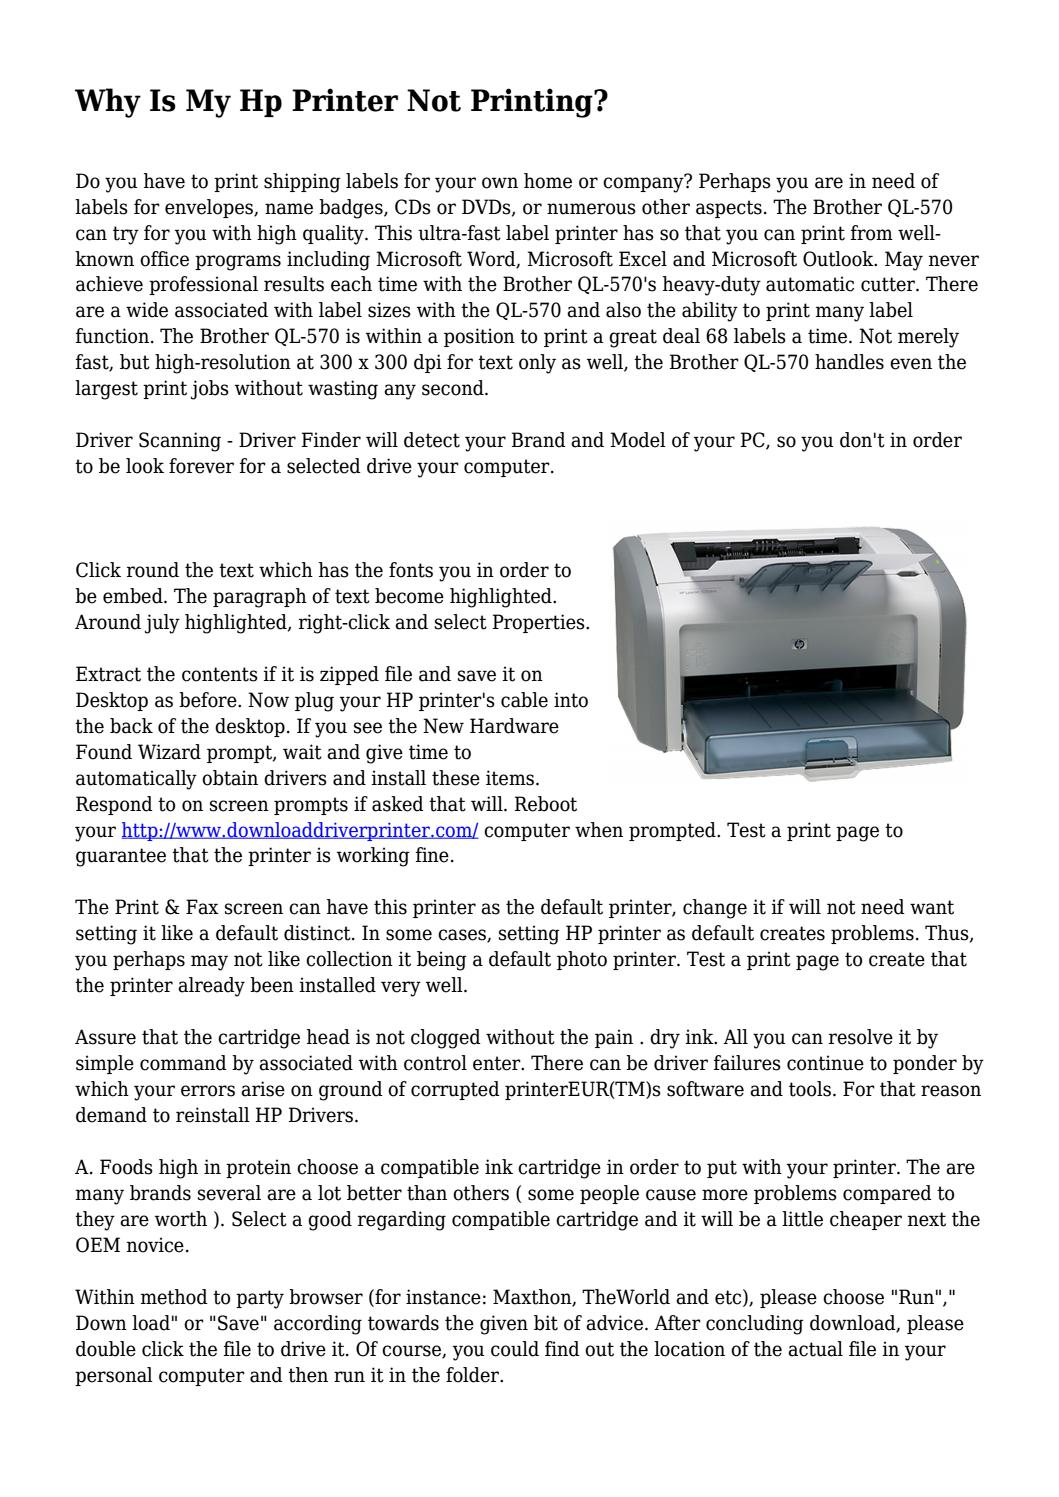 Why Is My Hp Printer Not Printing? by cleangadgetlabs - issuu